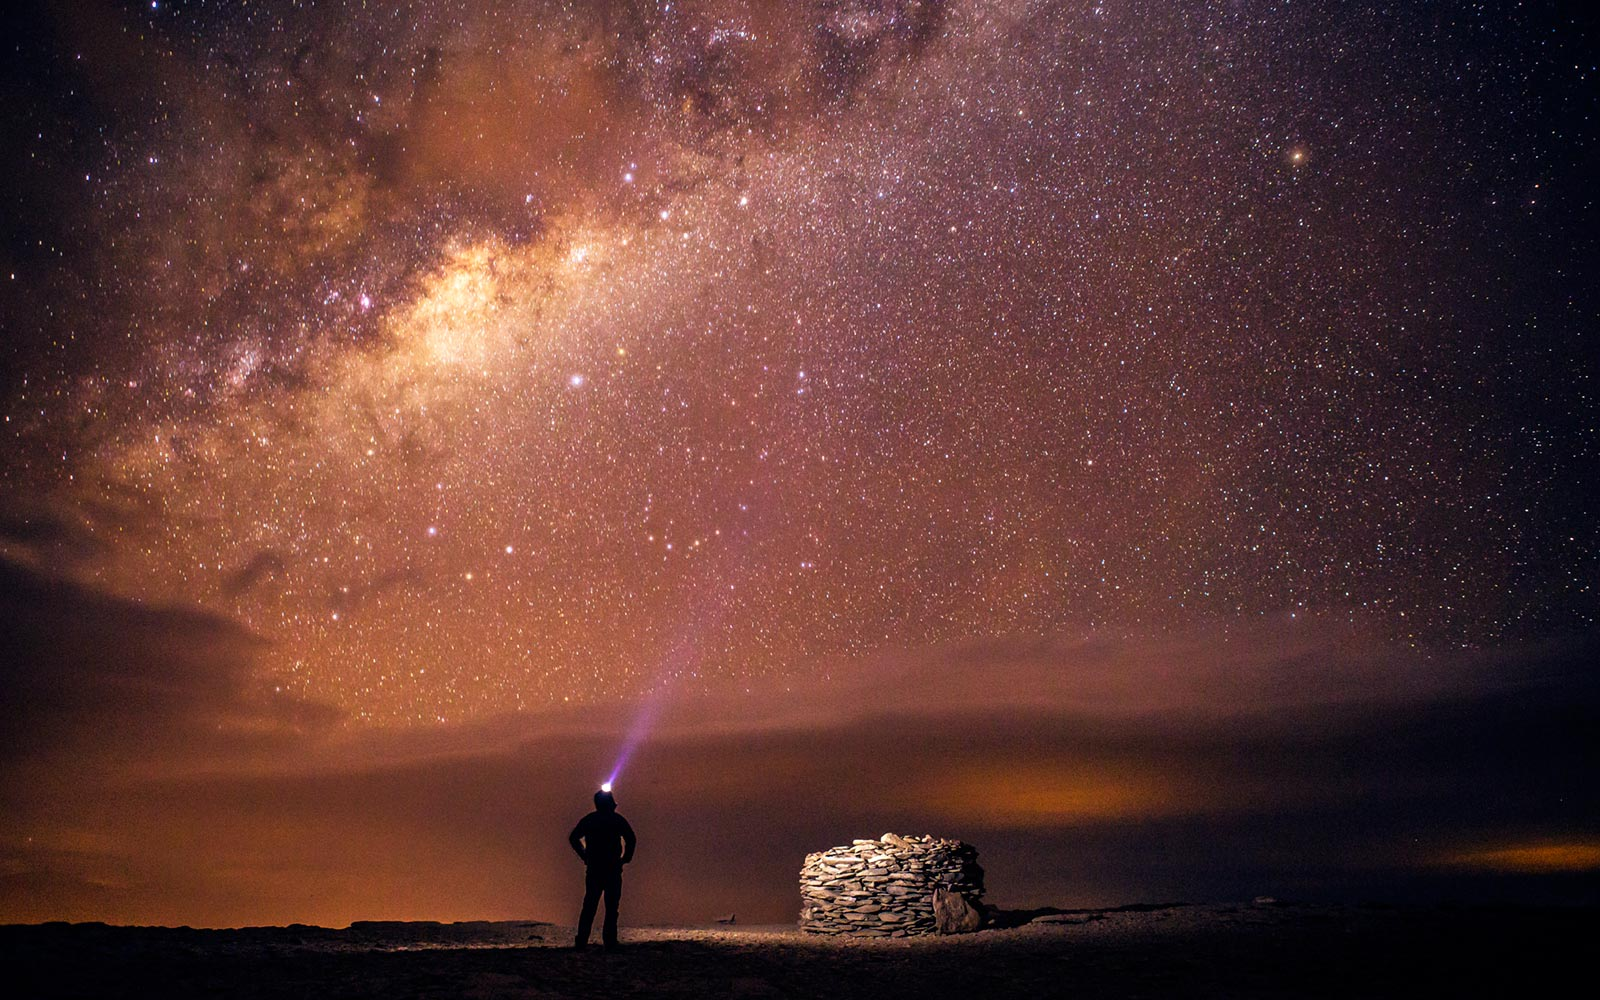 10 Incredible Nighttime Adventures That Take Stargazing to New Heights